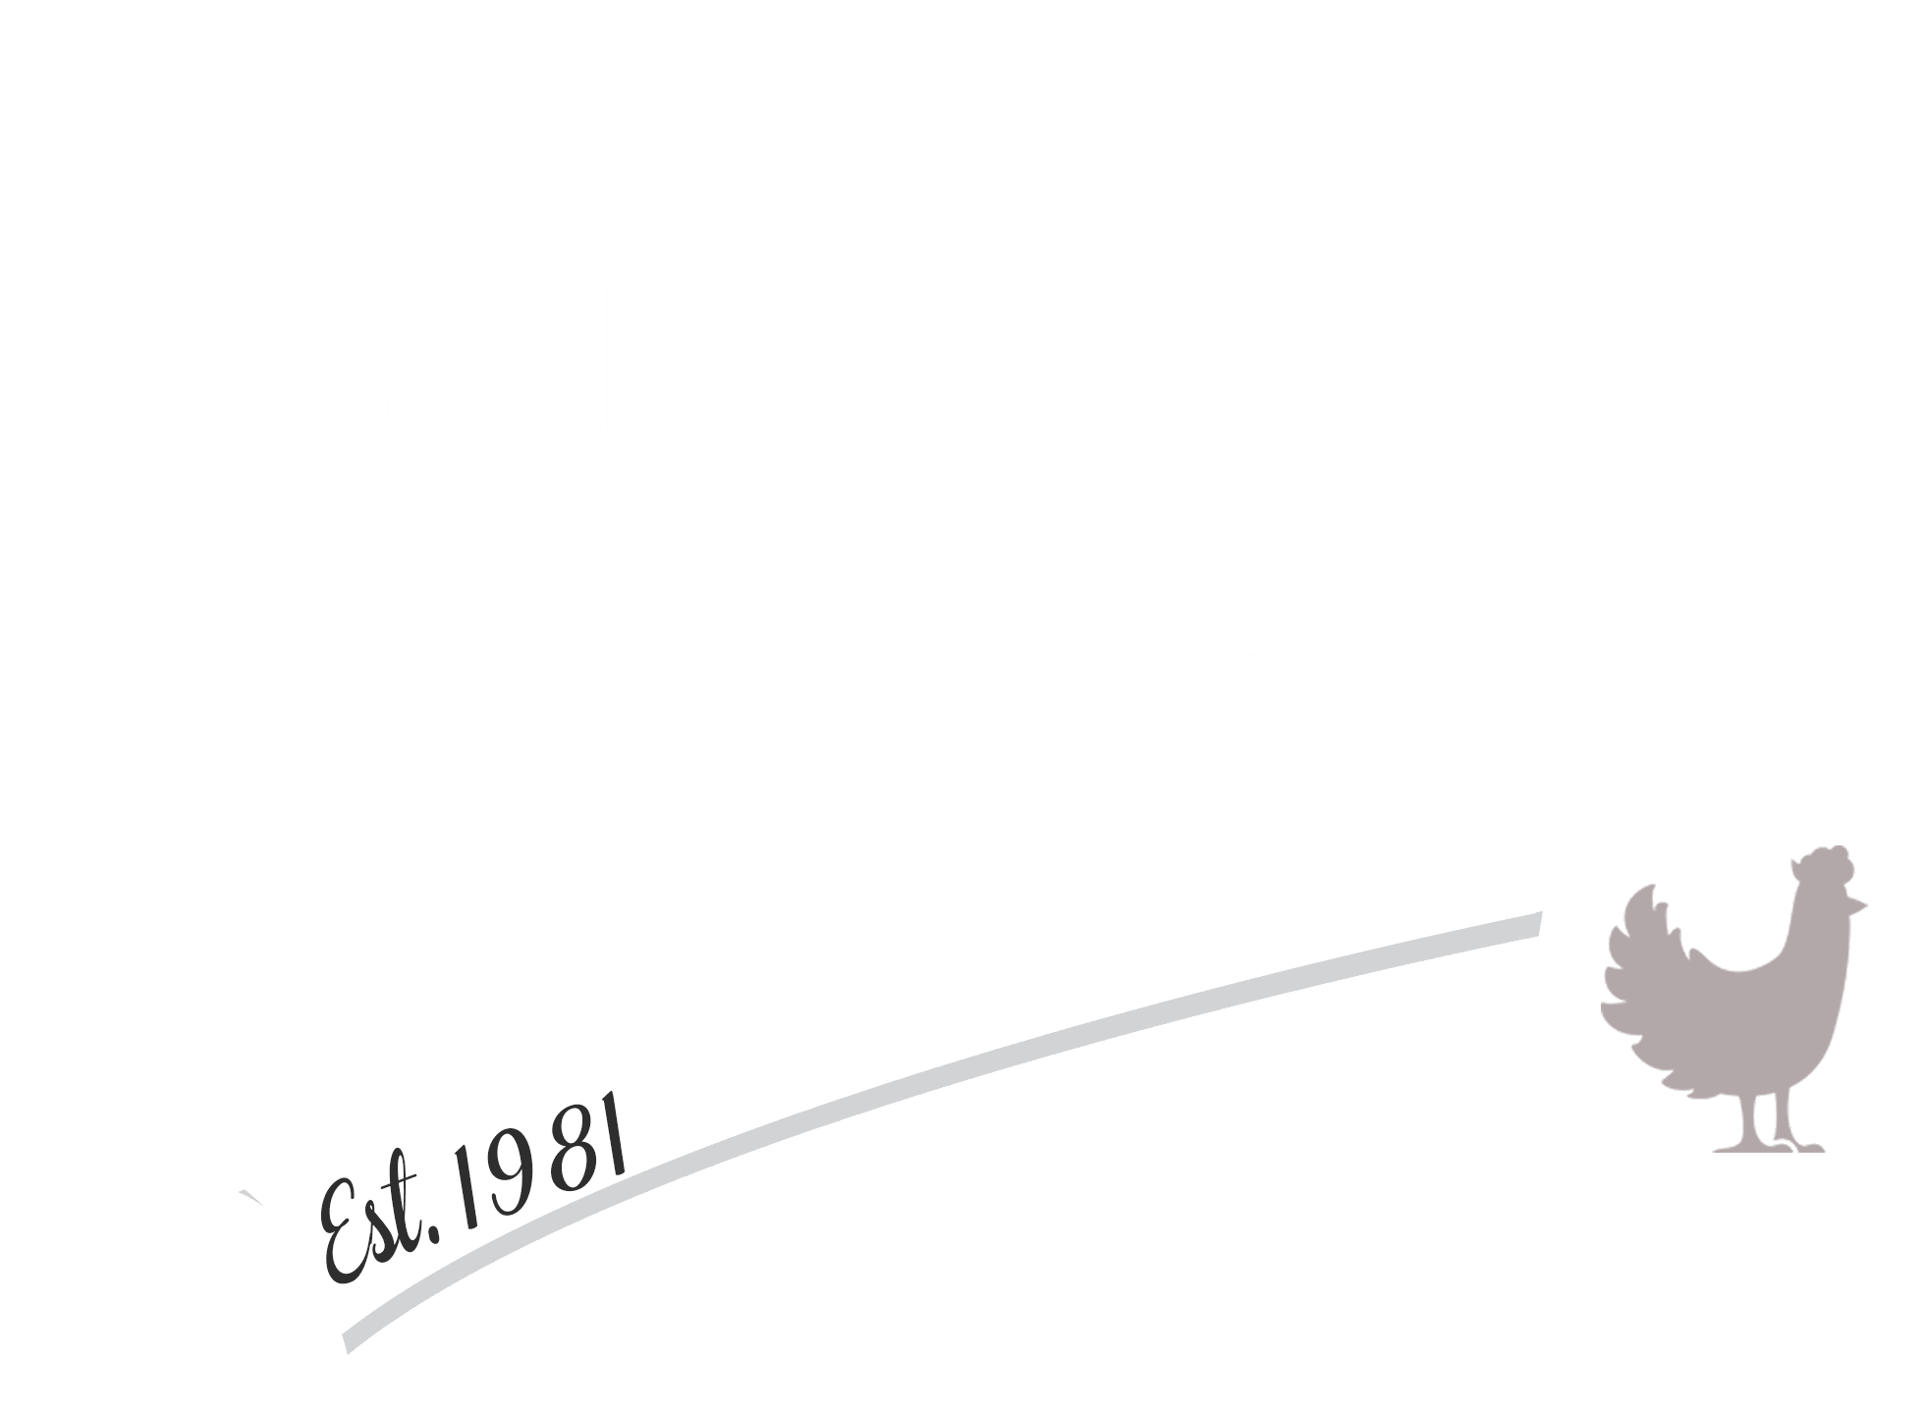 southern kitchen logo